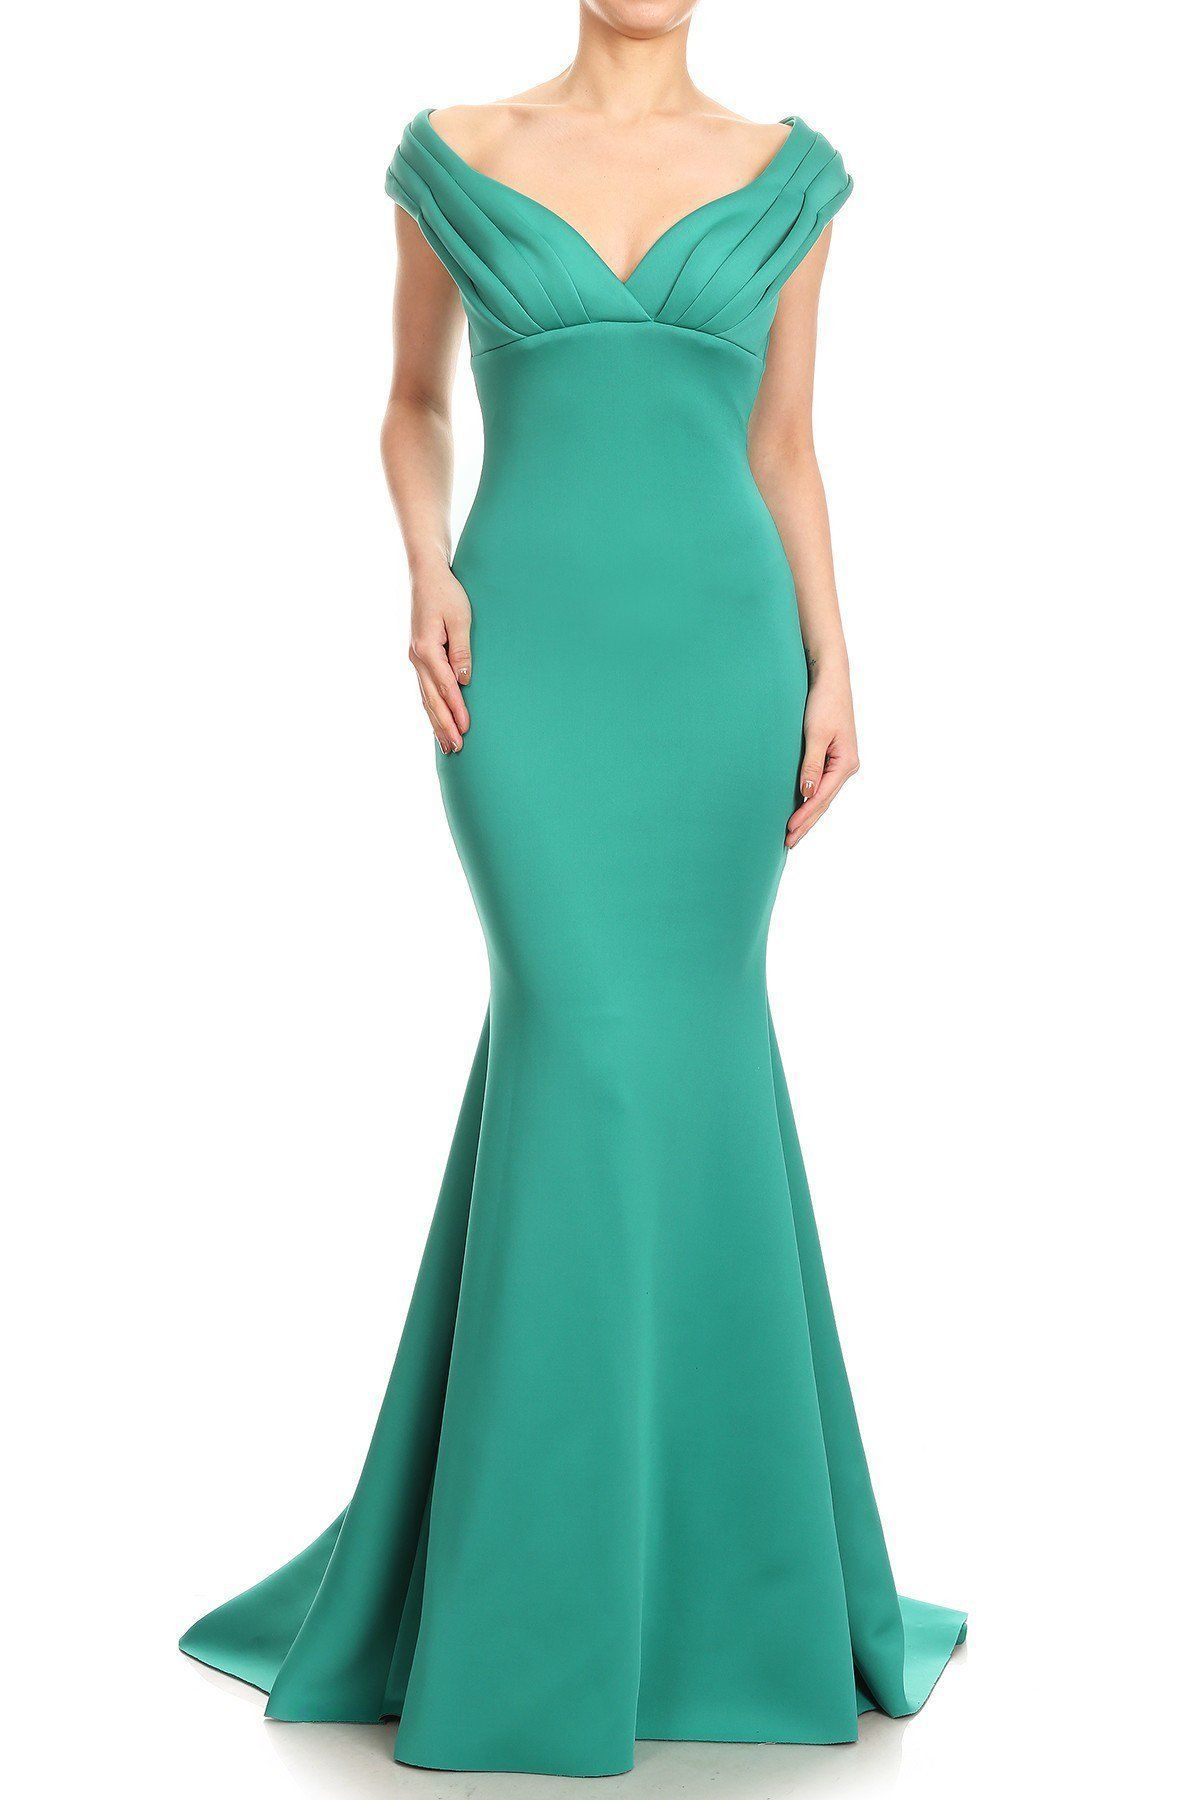 43b522095a94c Long structured evening gown featuring trumpet skirt and fitted bodice with  ruching on the bust.